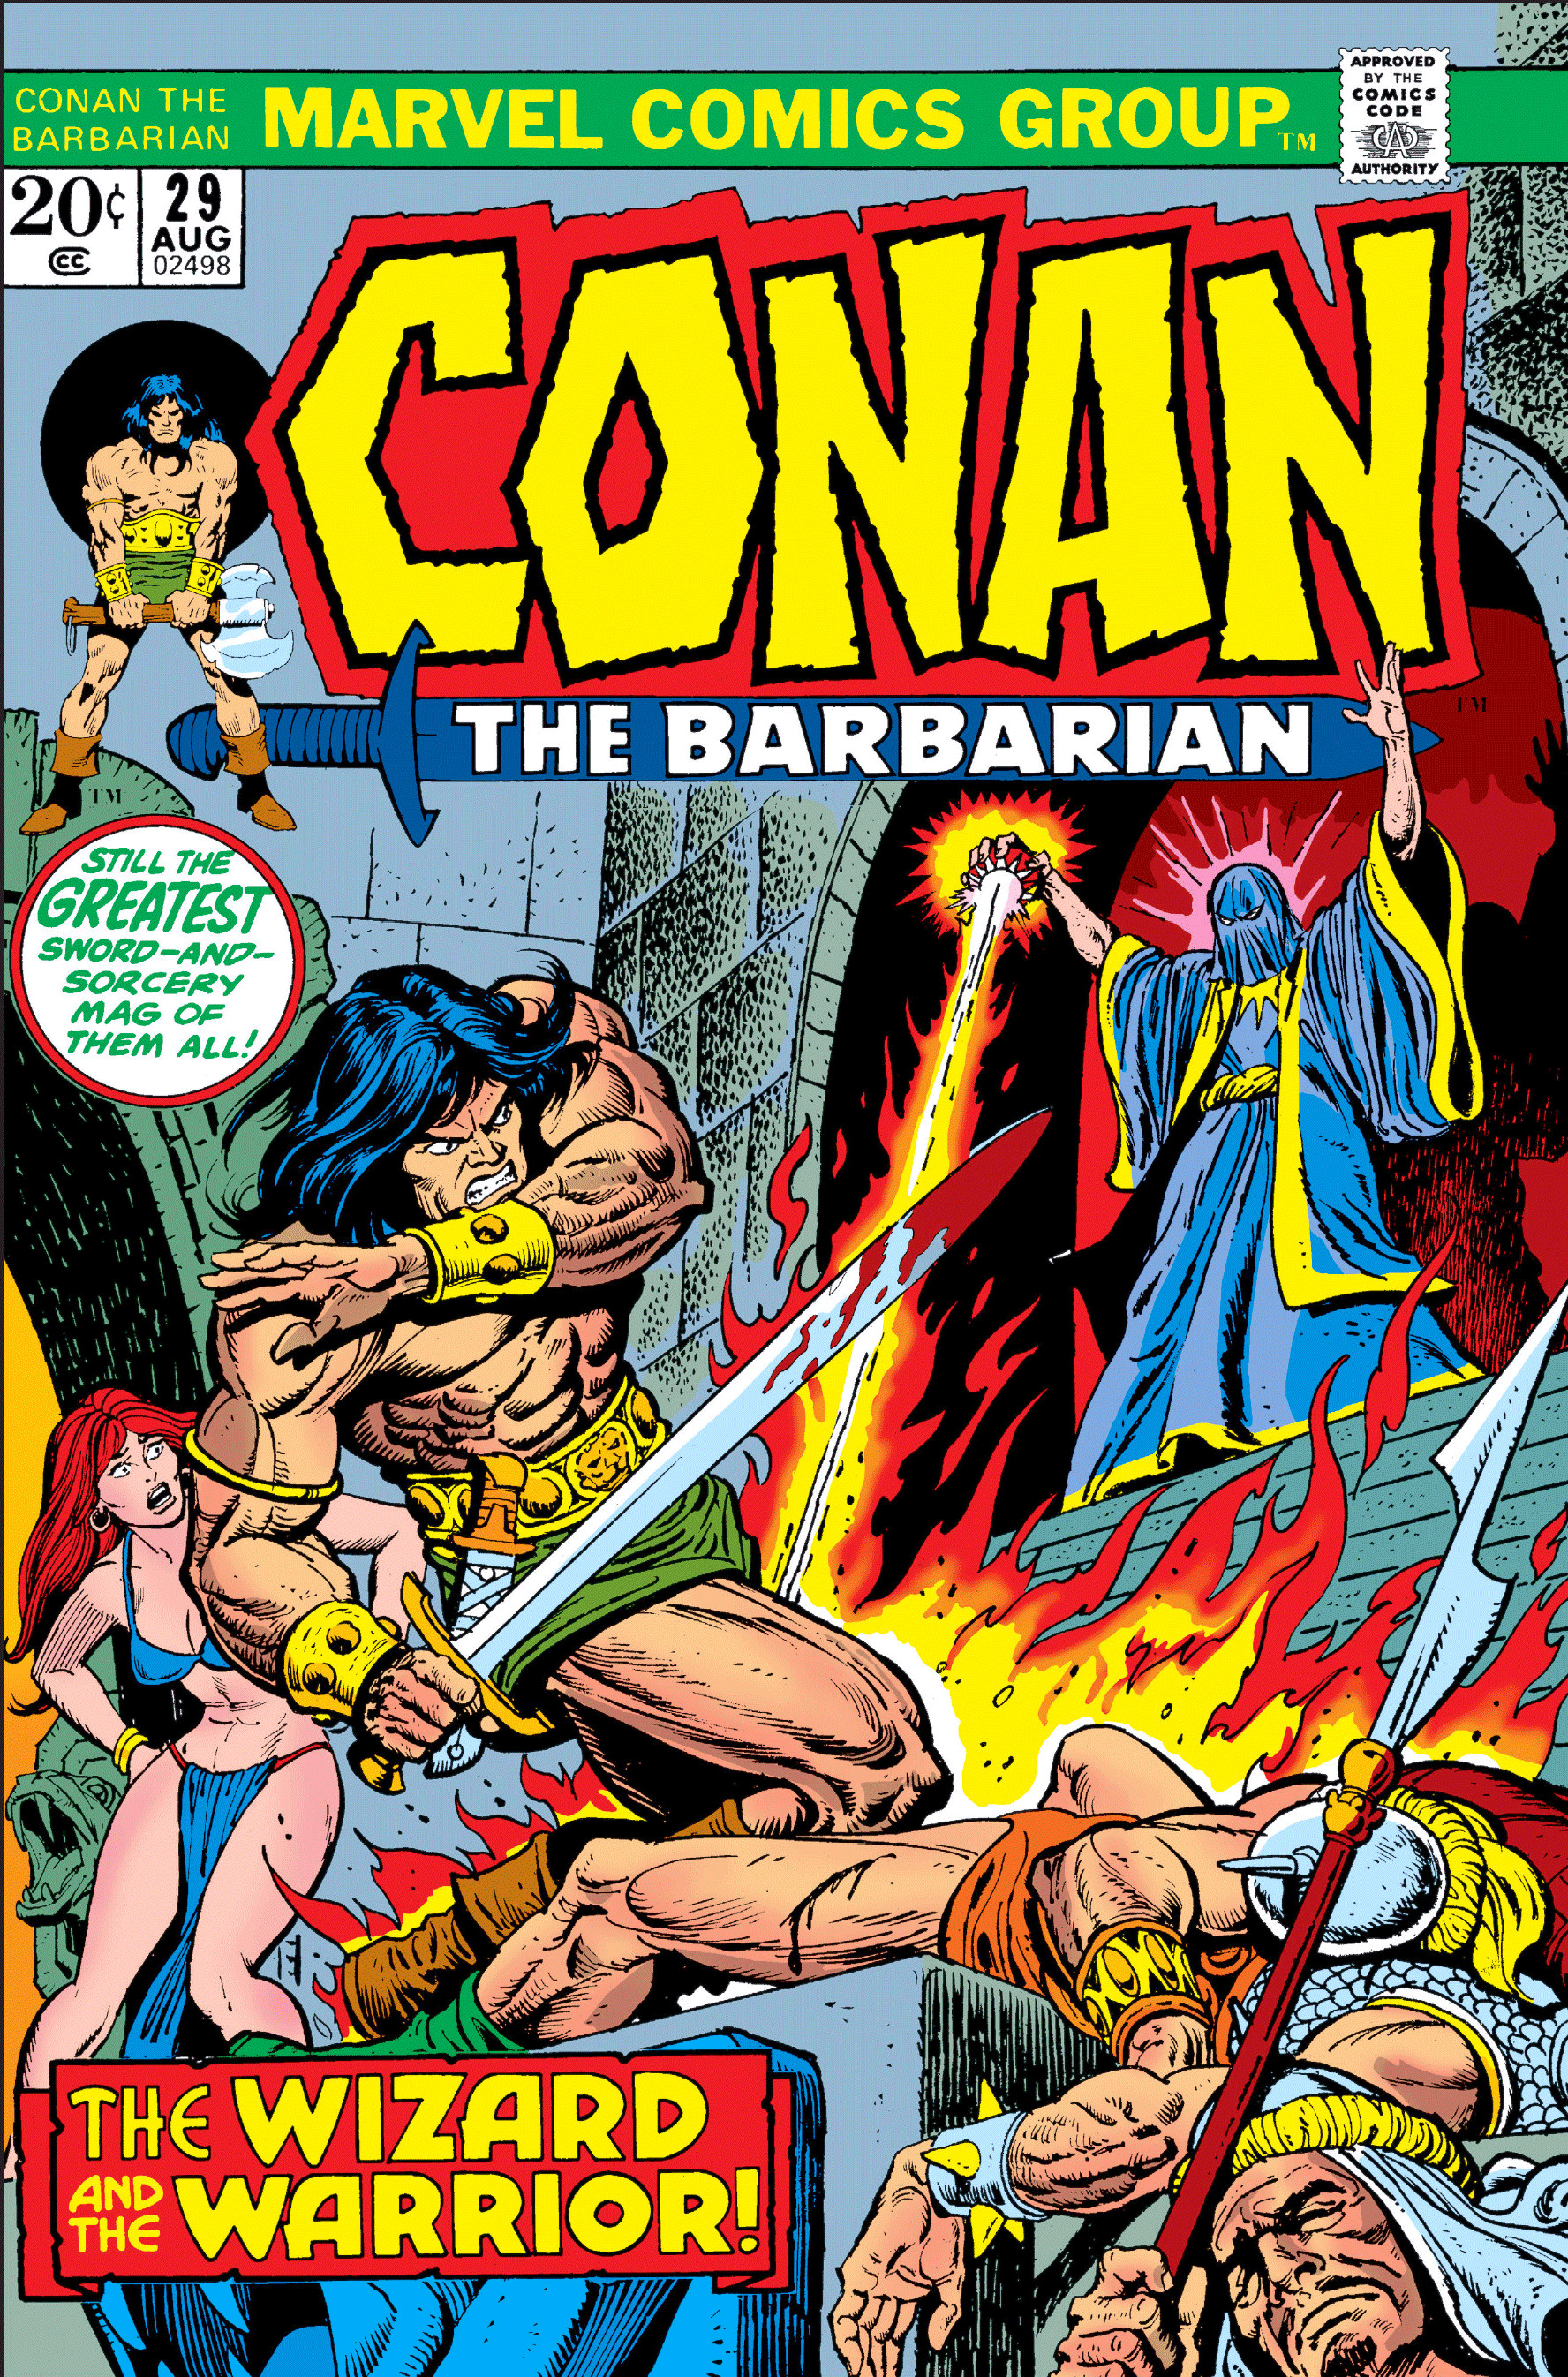 Conan the Barbarian Vol 1 29